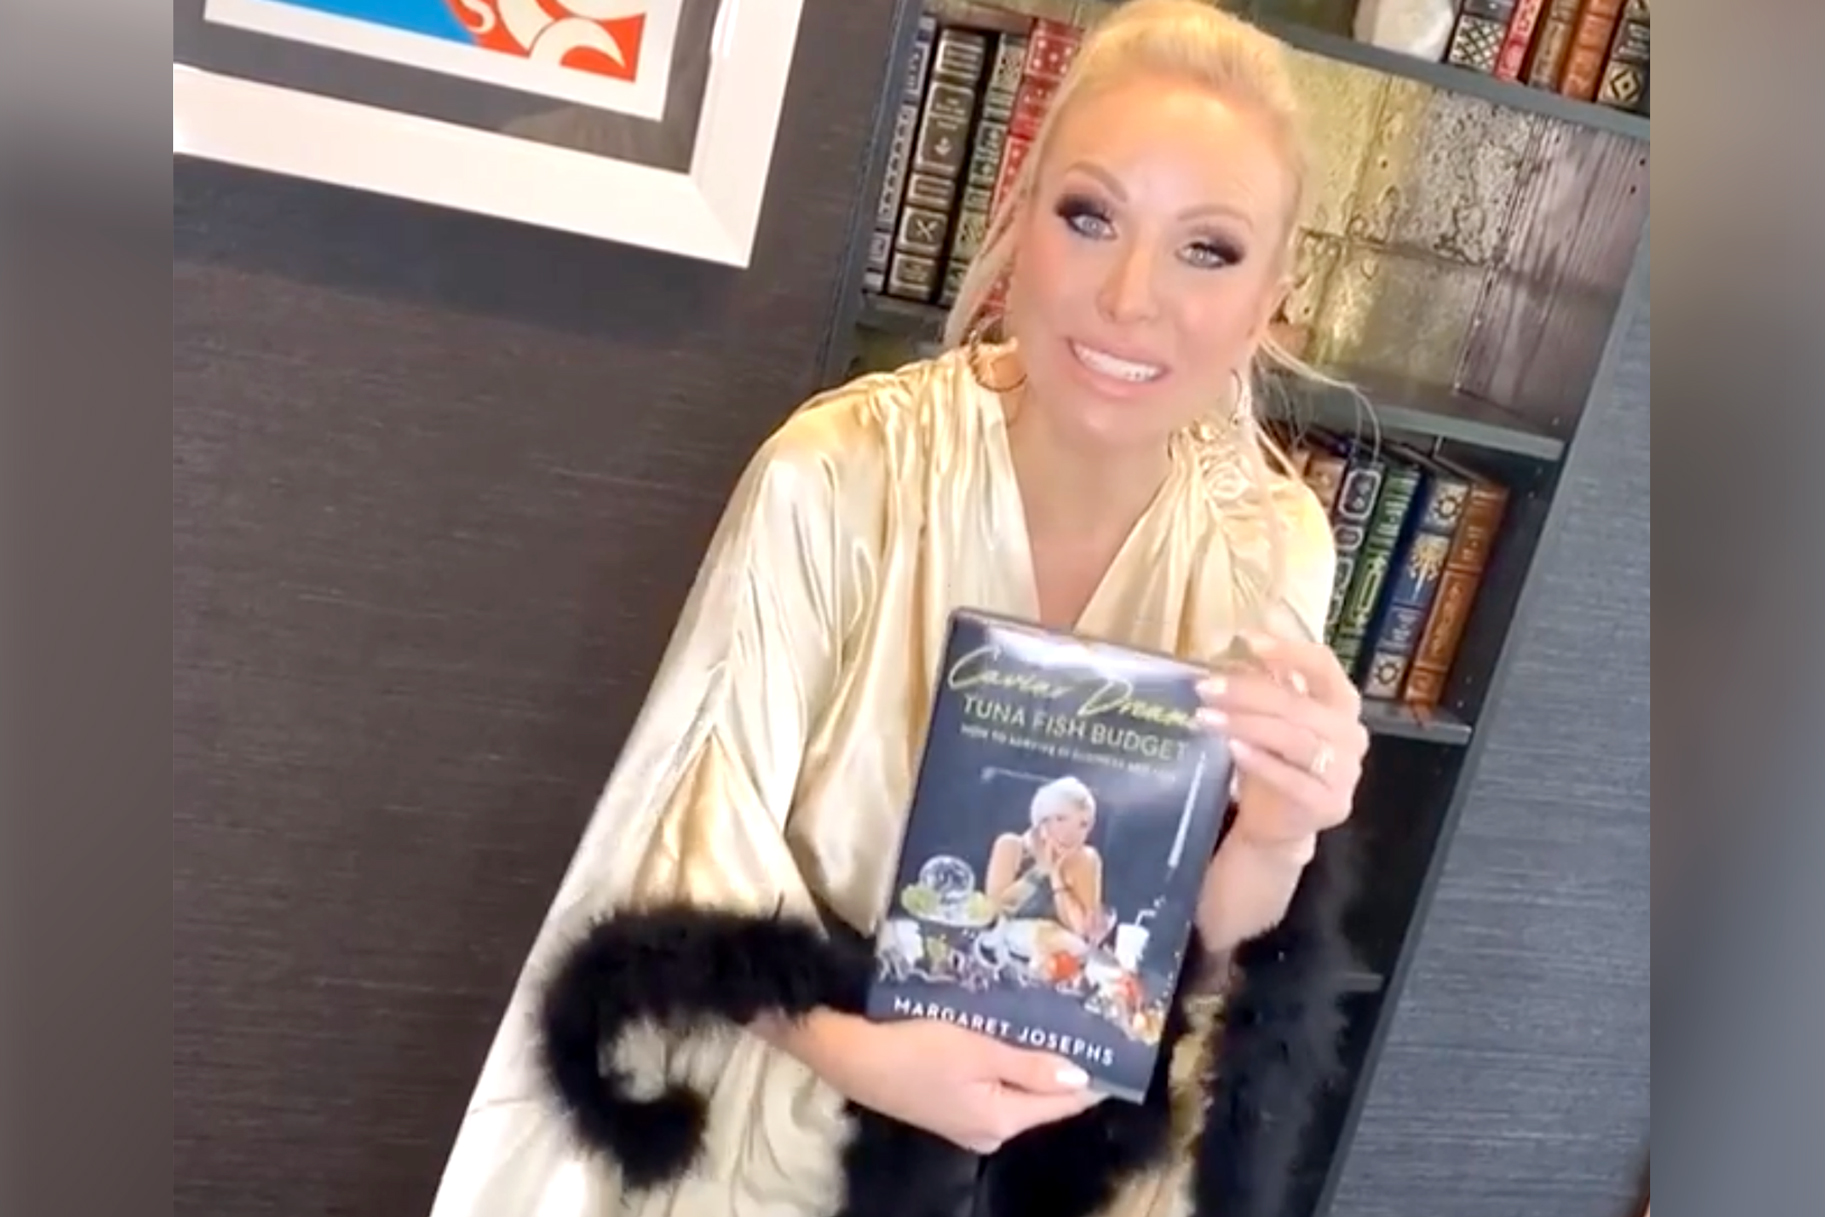 Margaret Josephs Book Reveal Rhonj